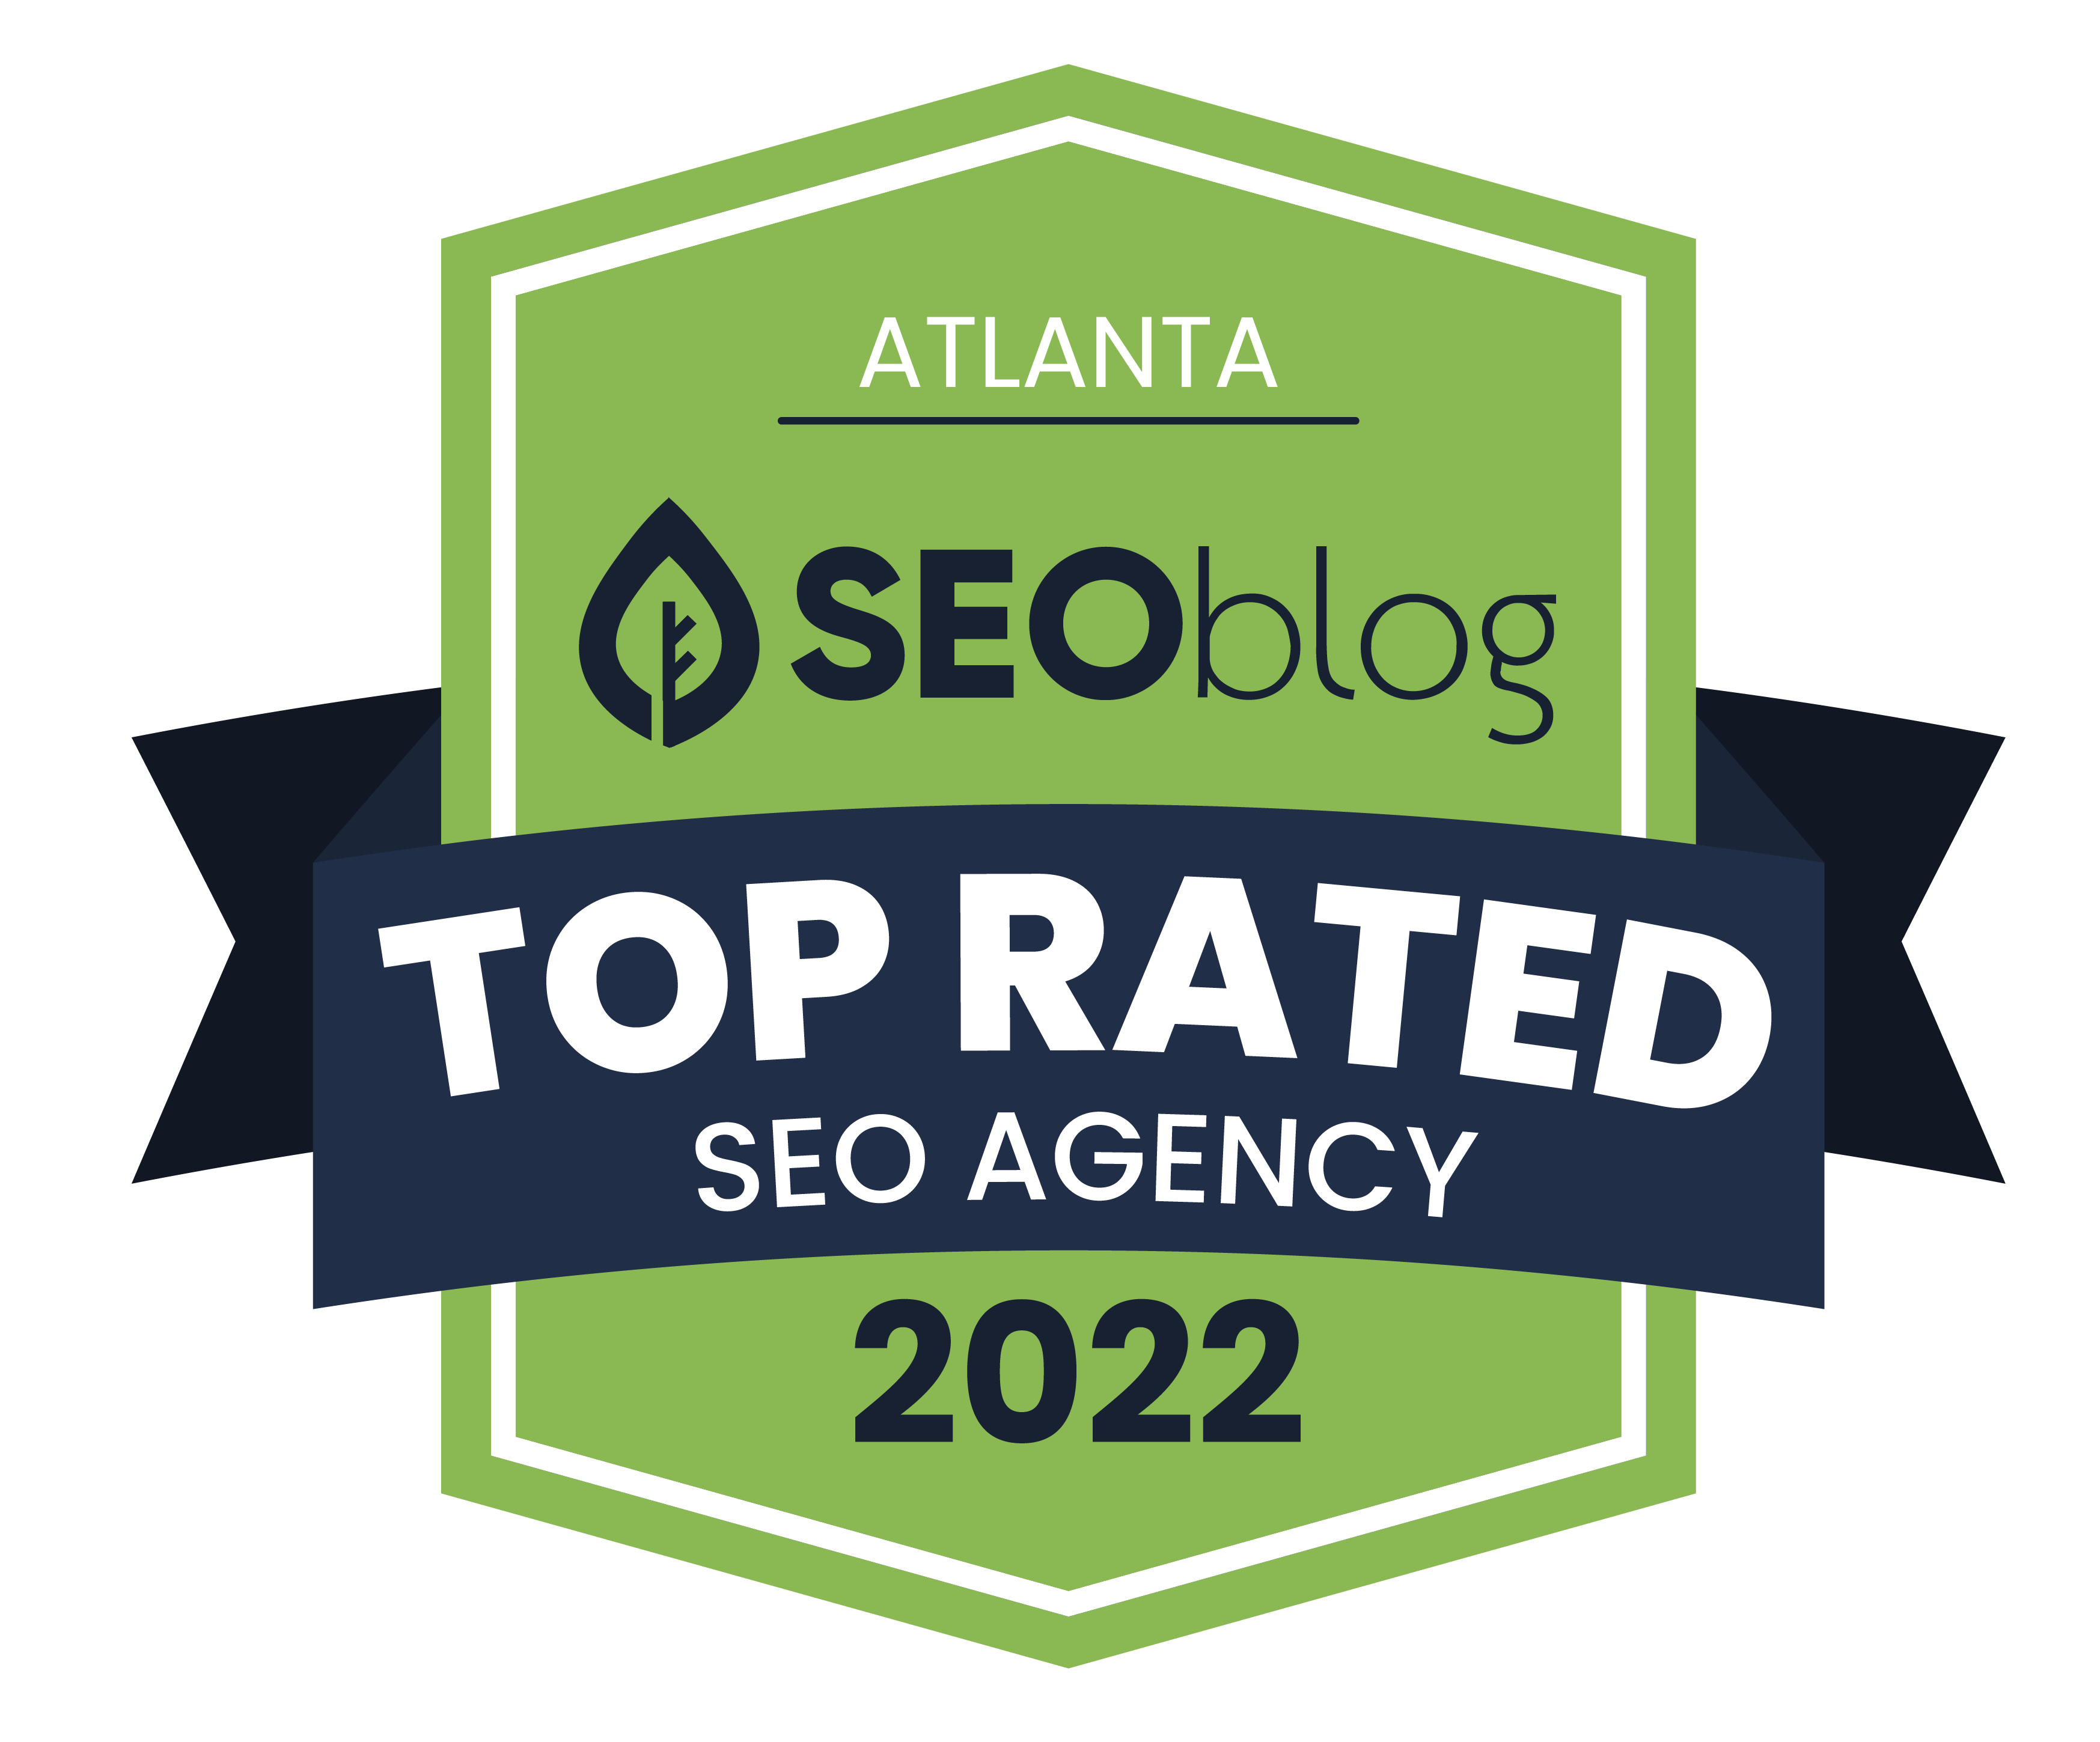 Atlanta SEO Agency